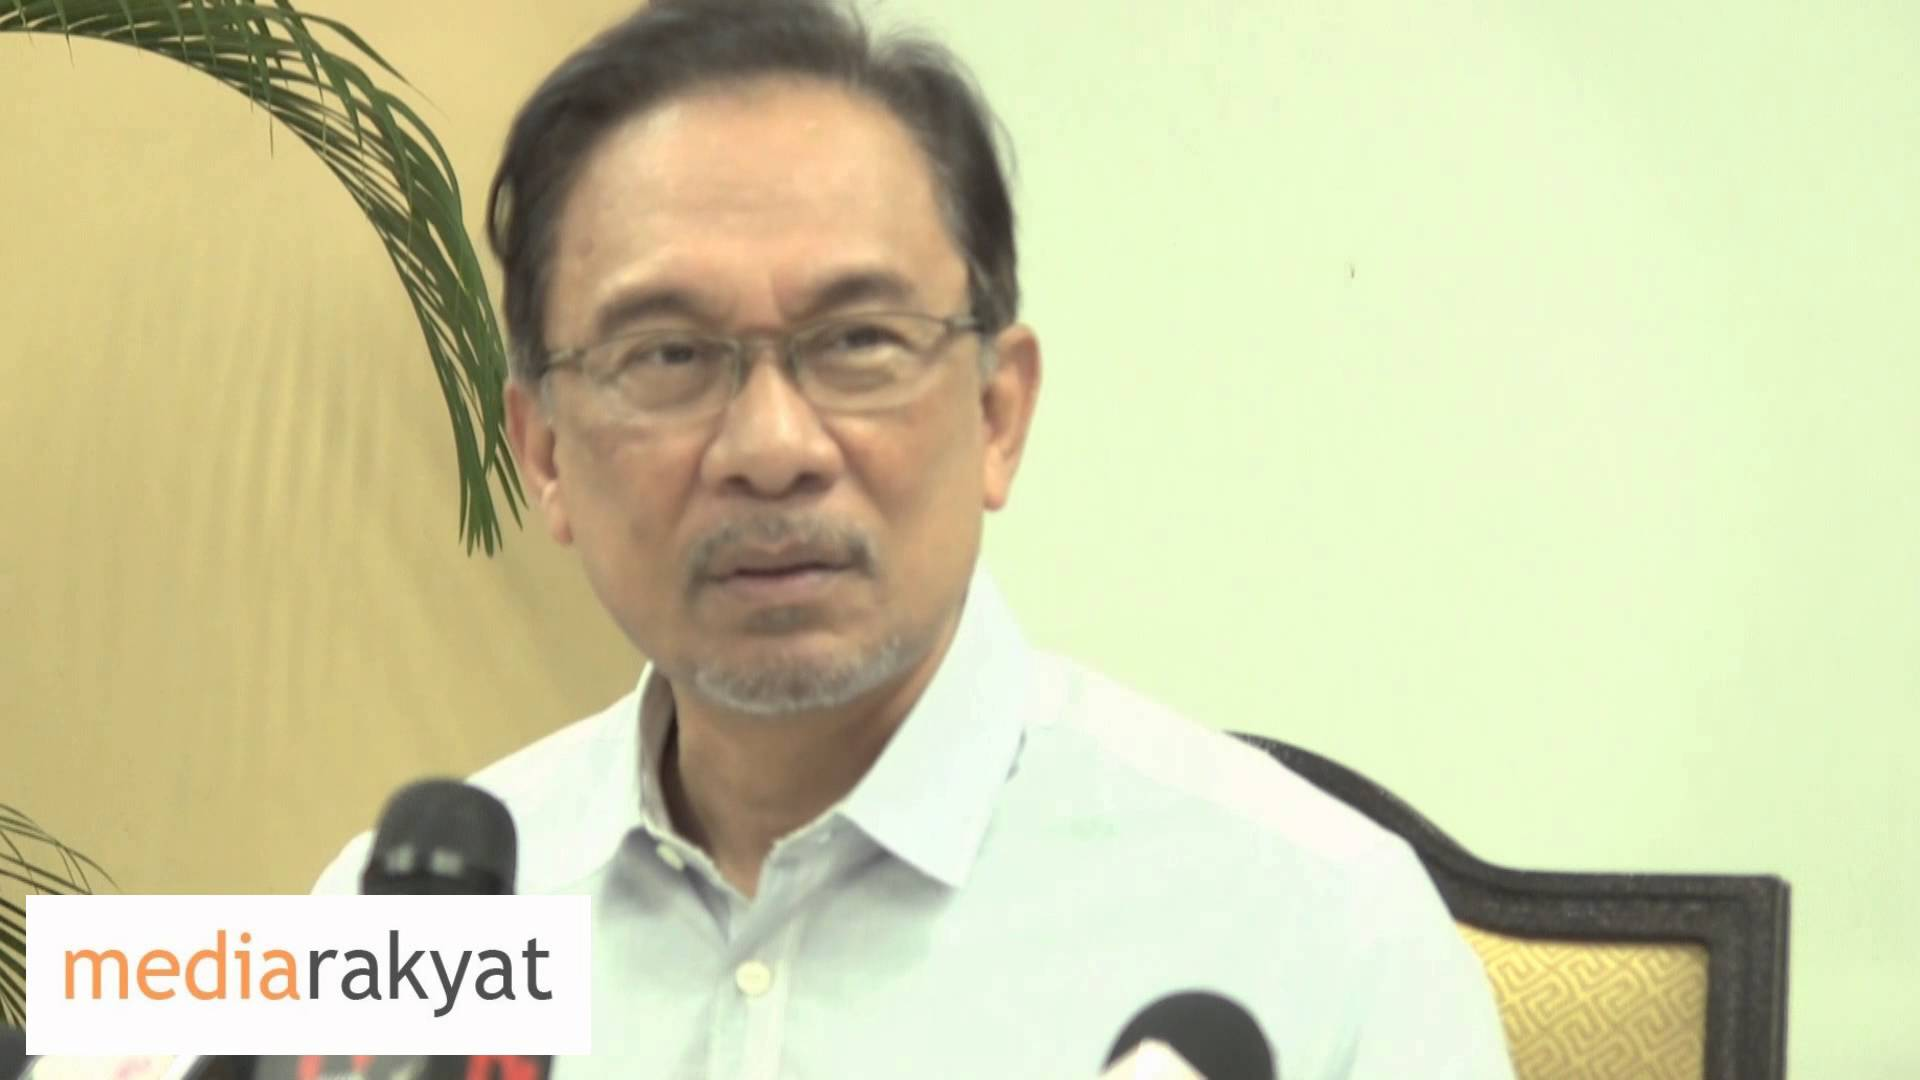 Anwar Ibrahim: Malaysians Must Come Together, United and Resolved, to Save Our Country